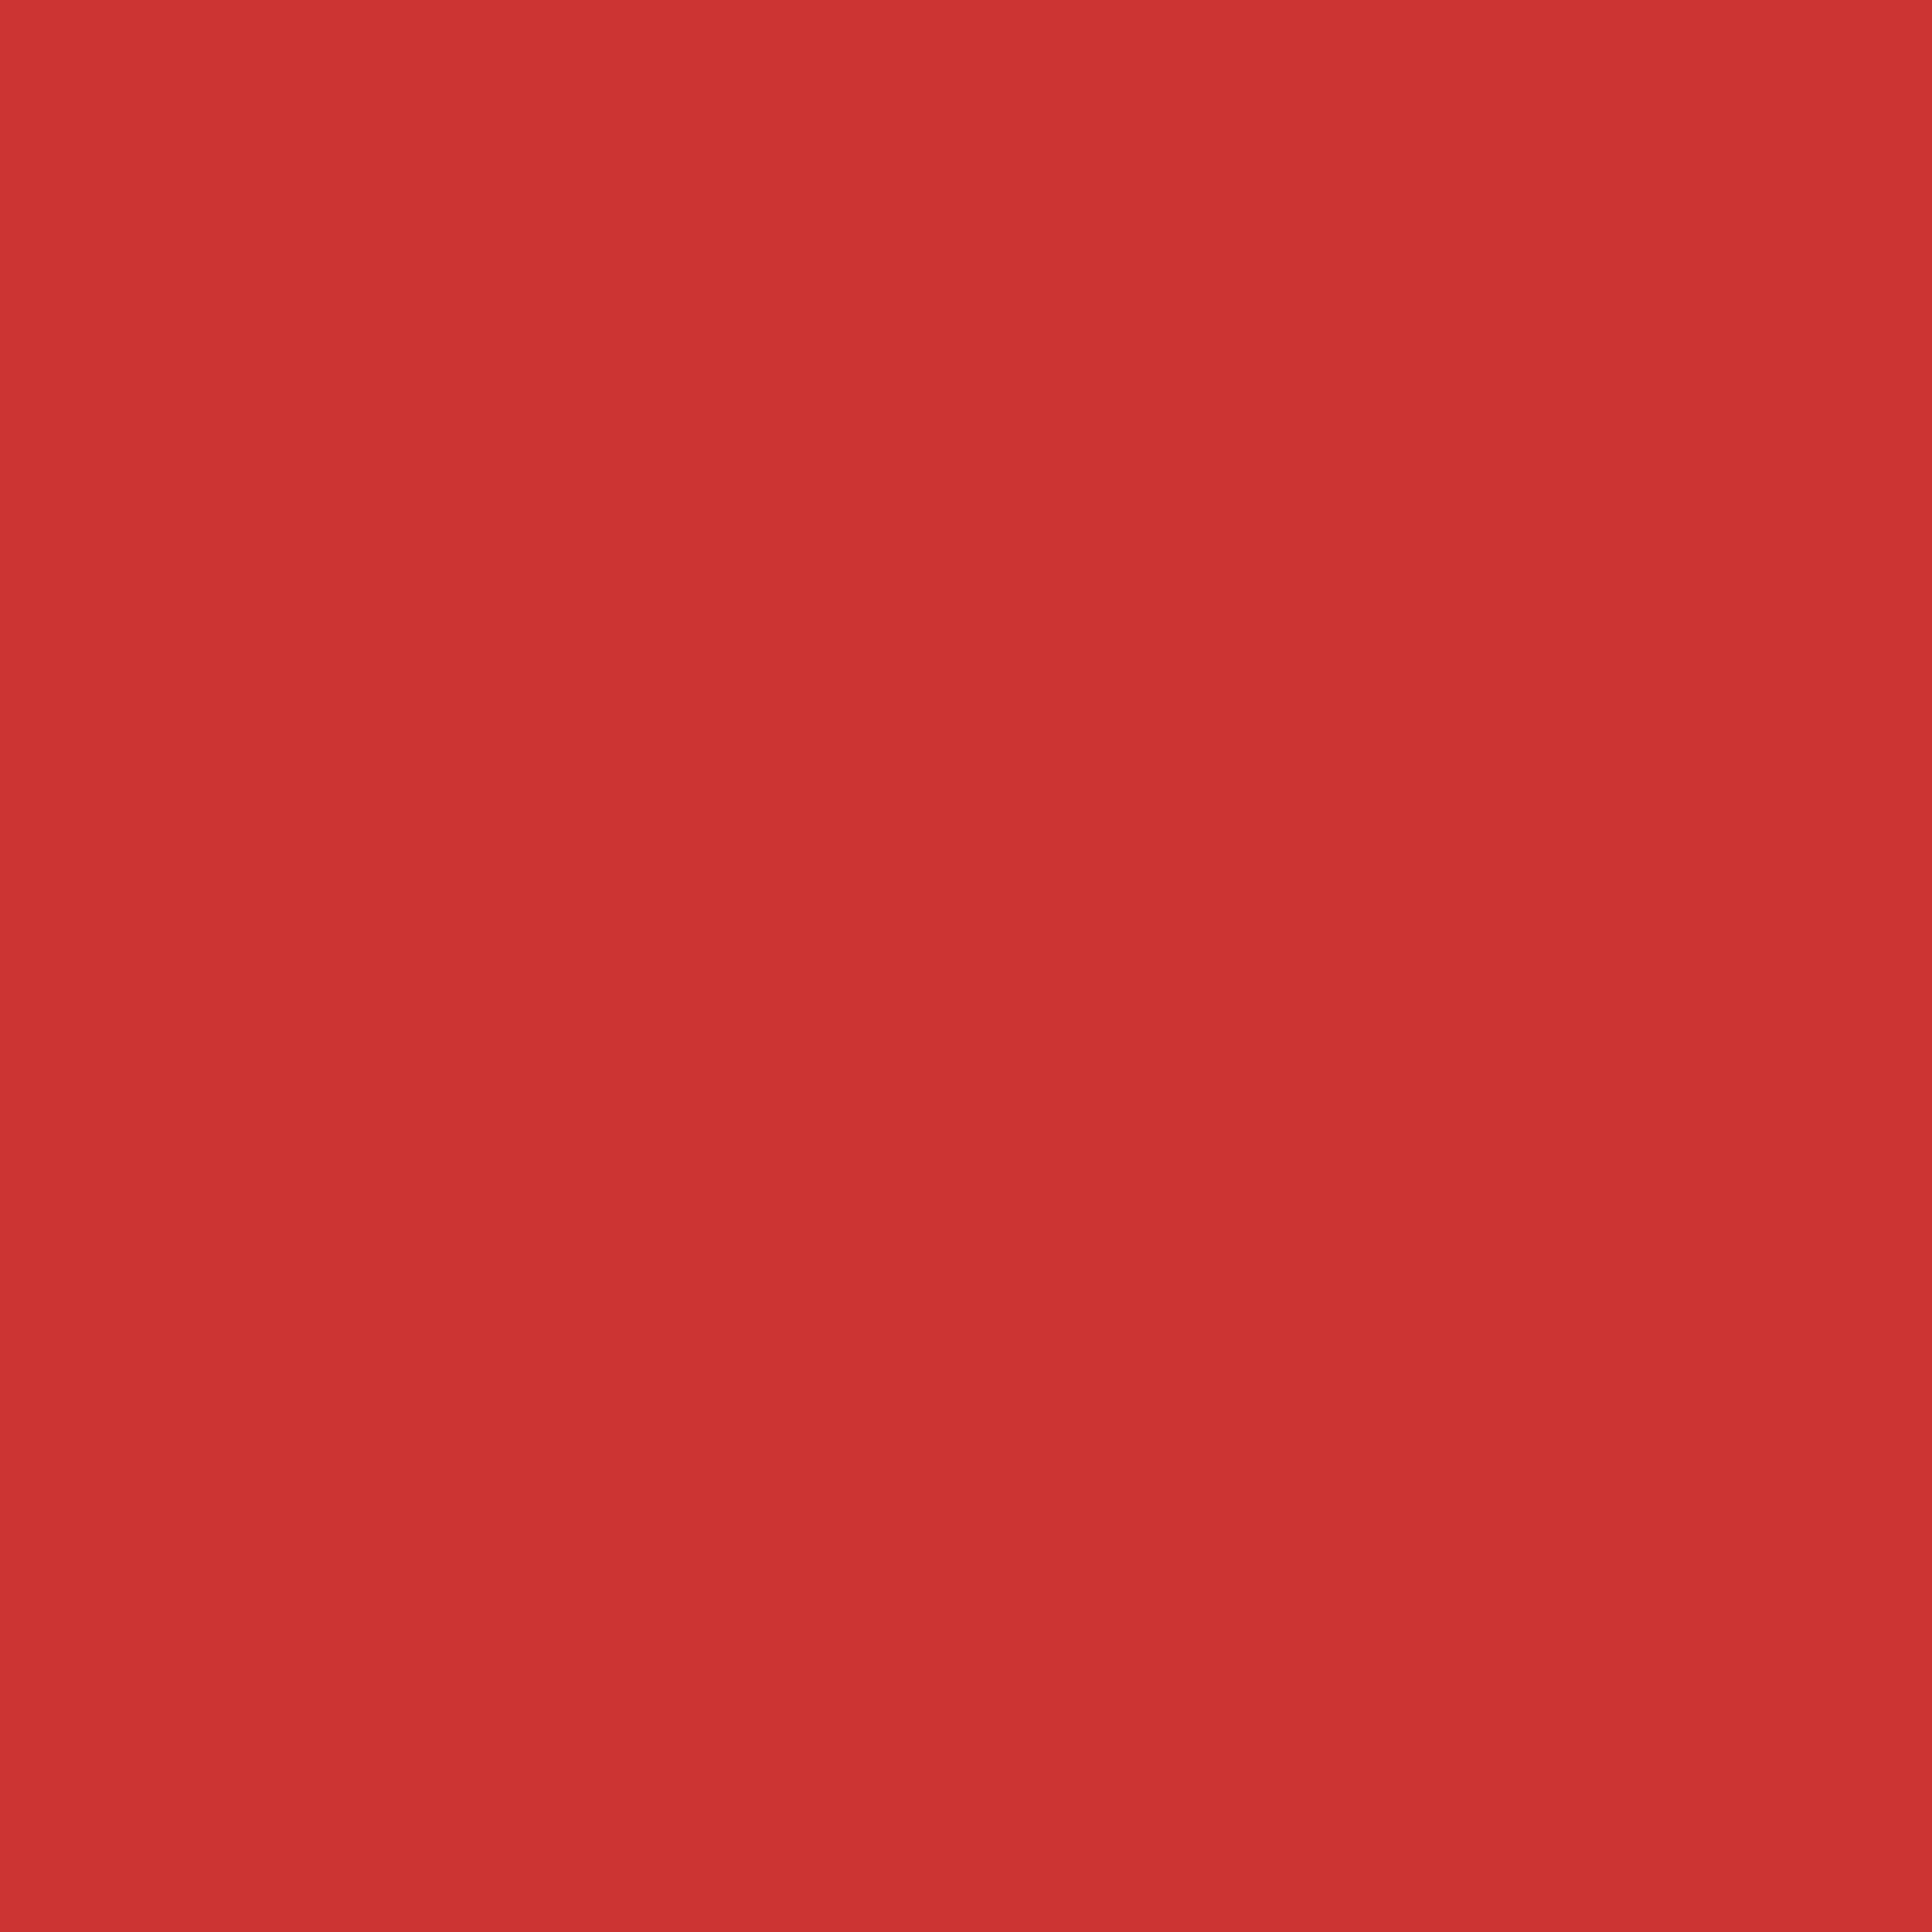 3600x3600 Persian Red Solid Color Background